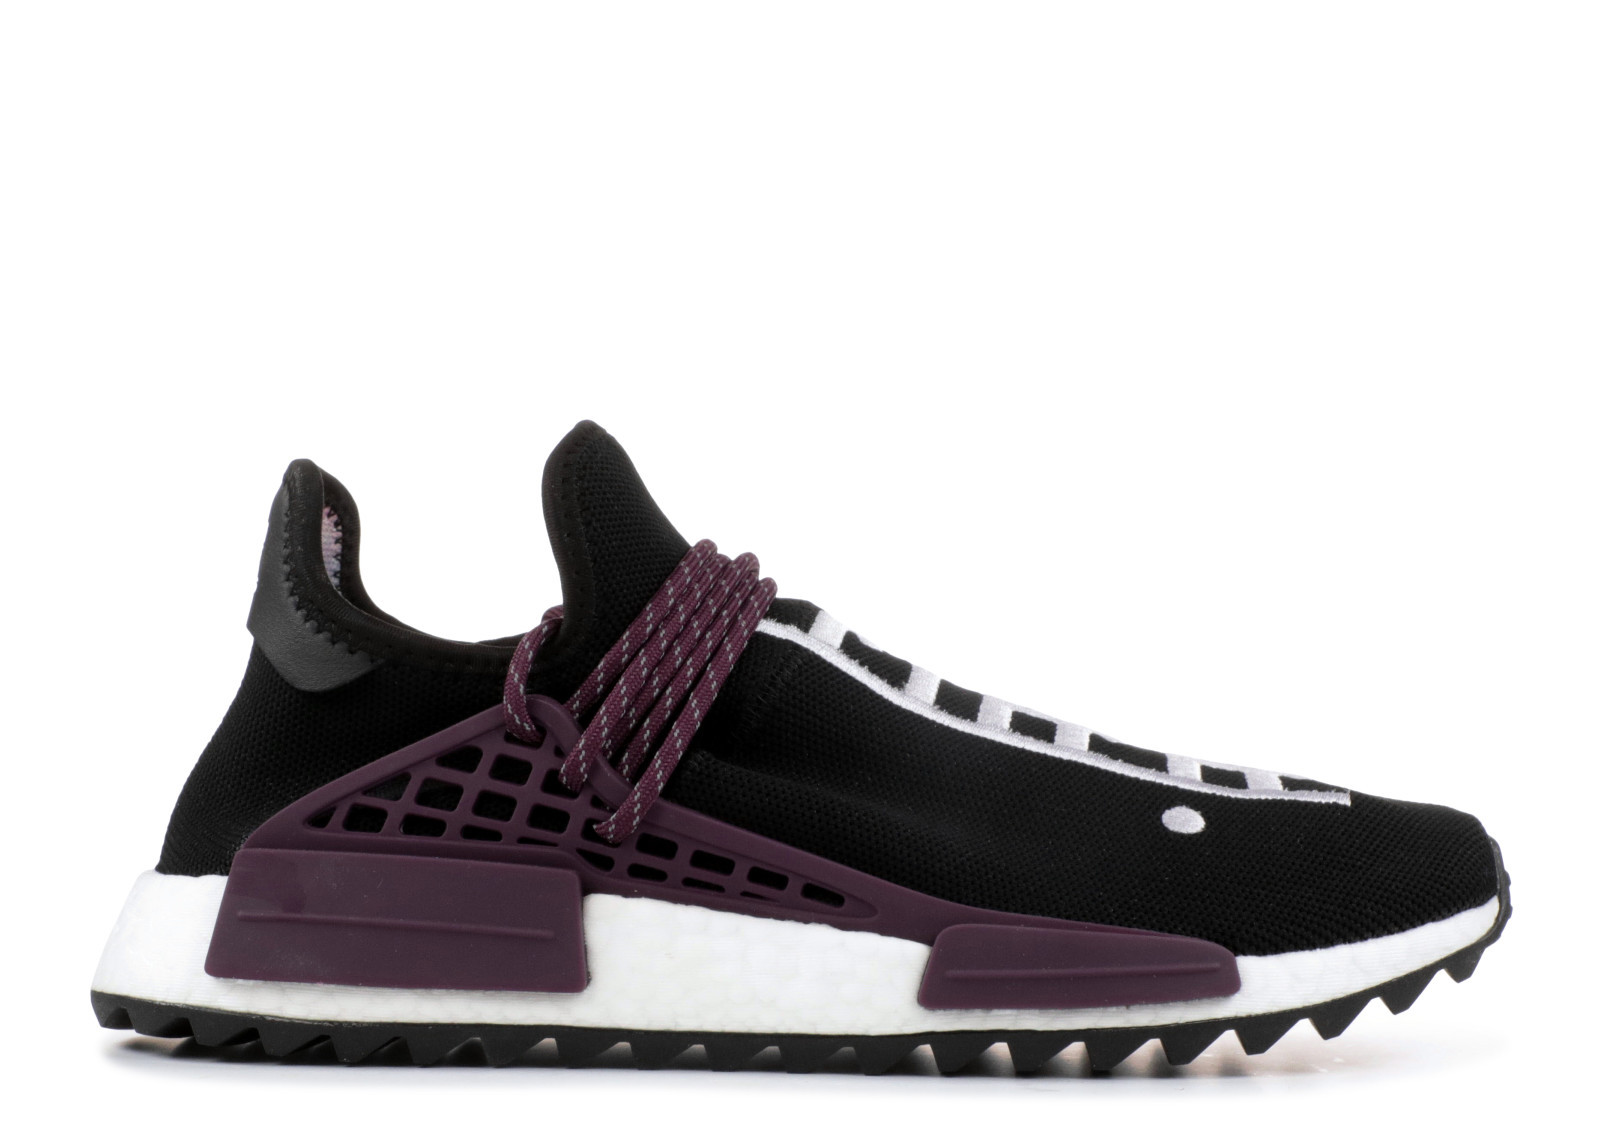 PW HUMAN RACE HOLI NMD MC EQUALITY image 1